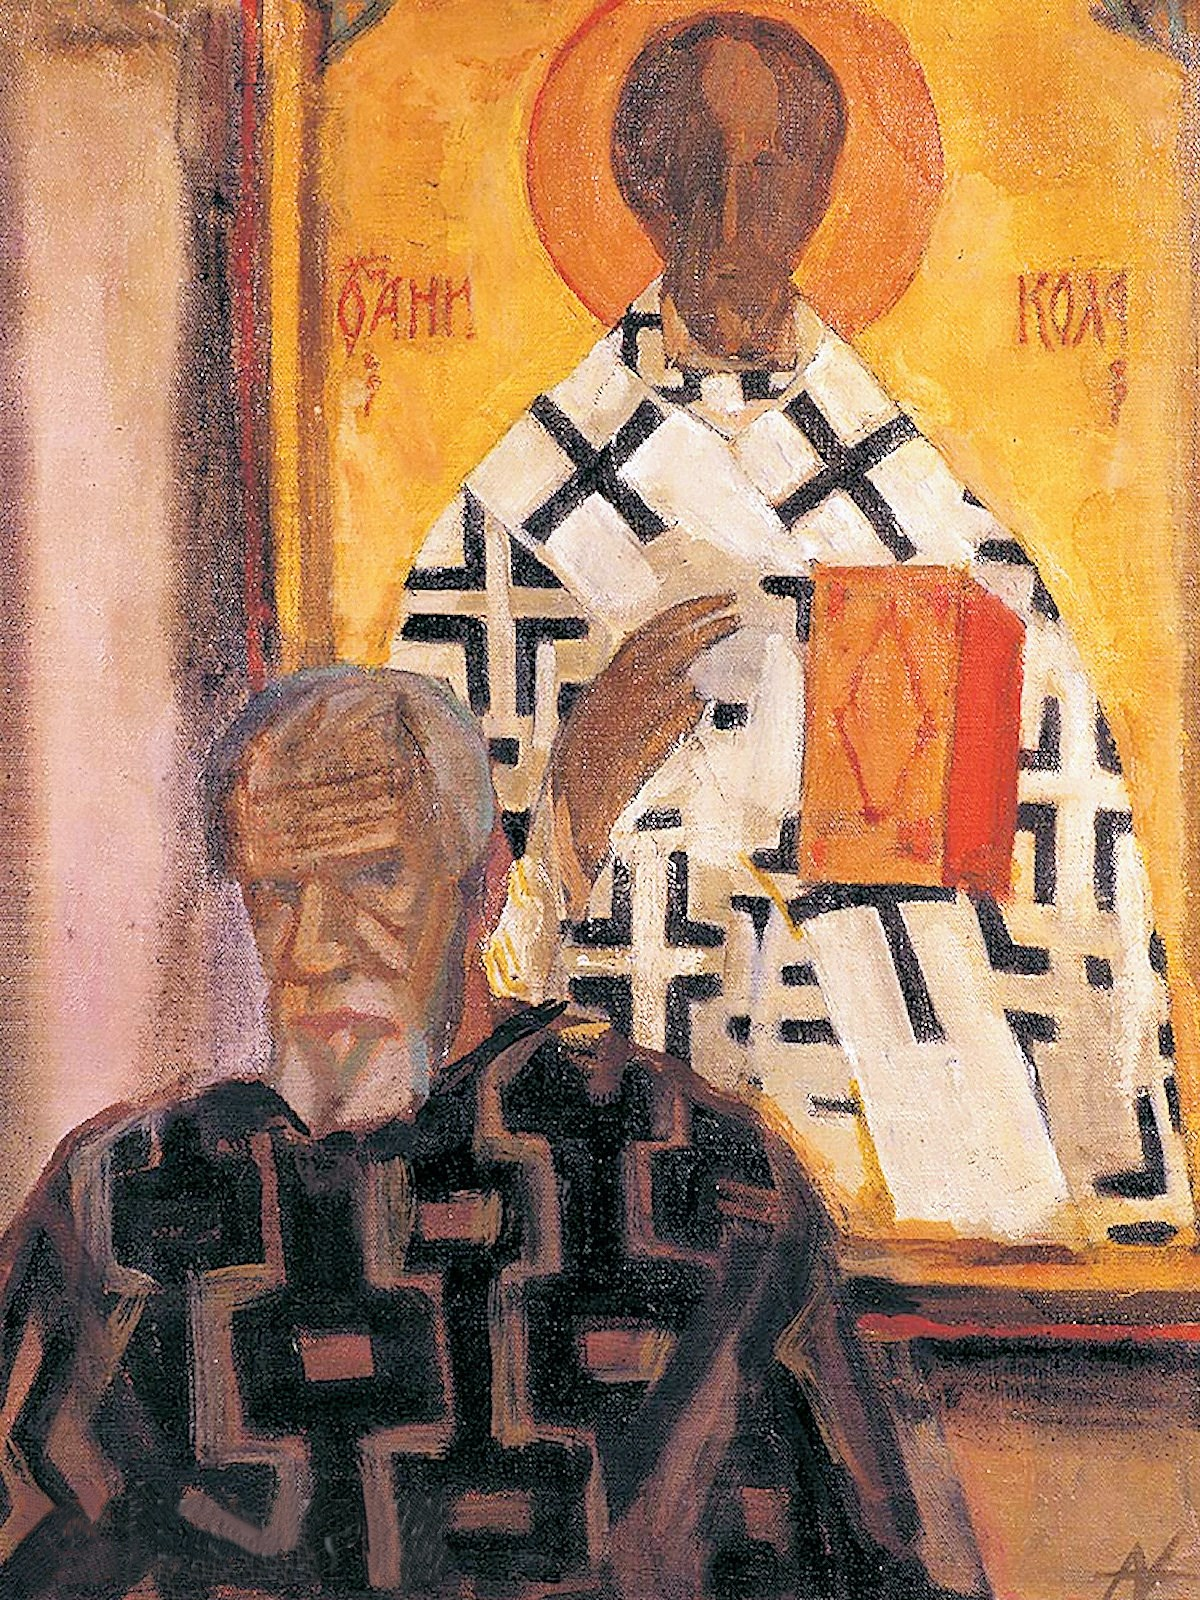 00-nikolai-andronov-self-portrait-in-the-museum-1996